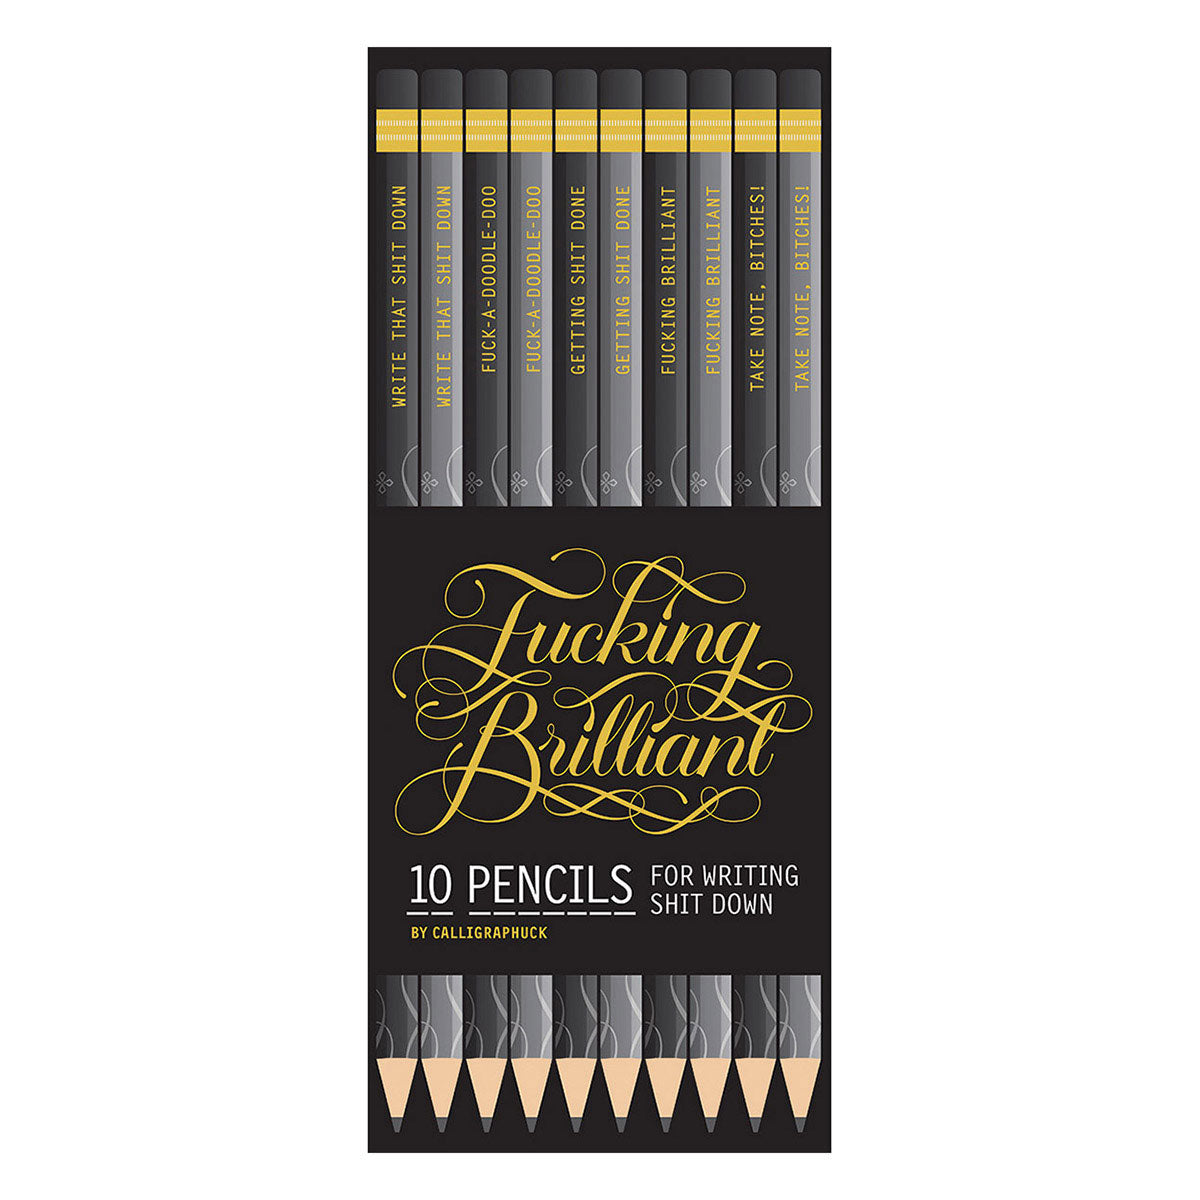 Calligraphuck Calligraphuck Fucking Brilliant Pencils 10 pack